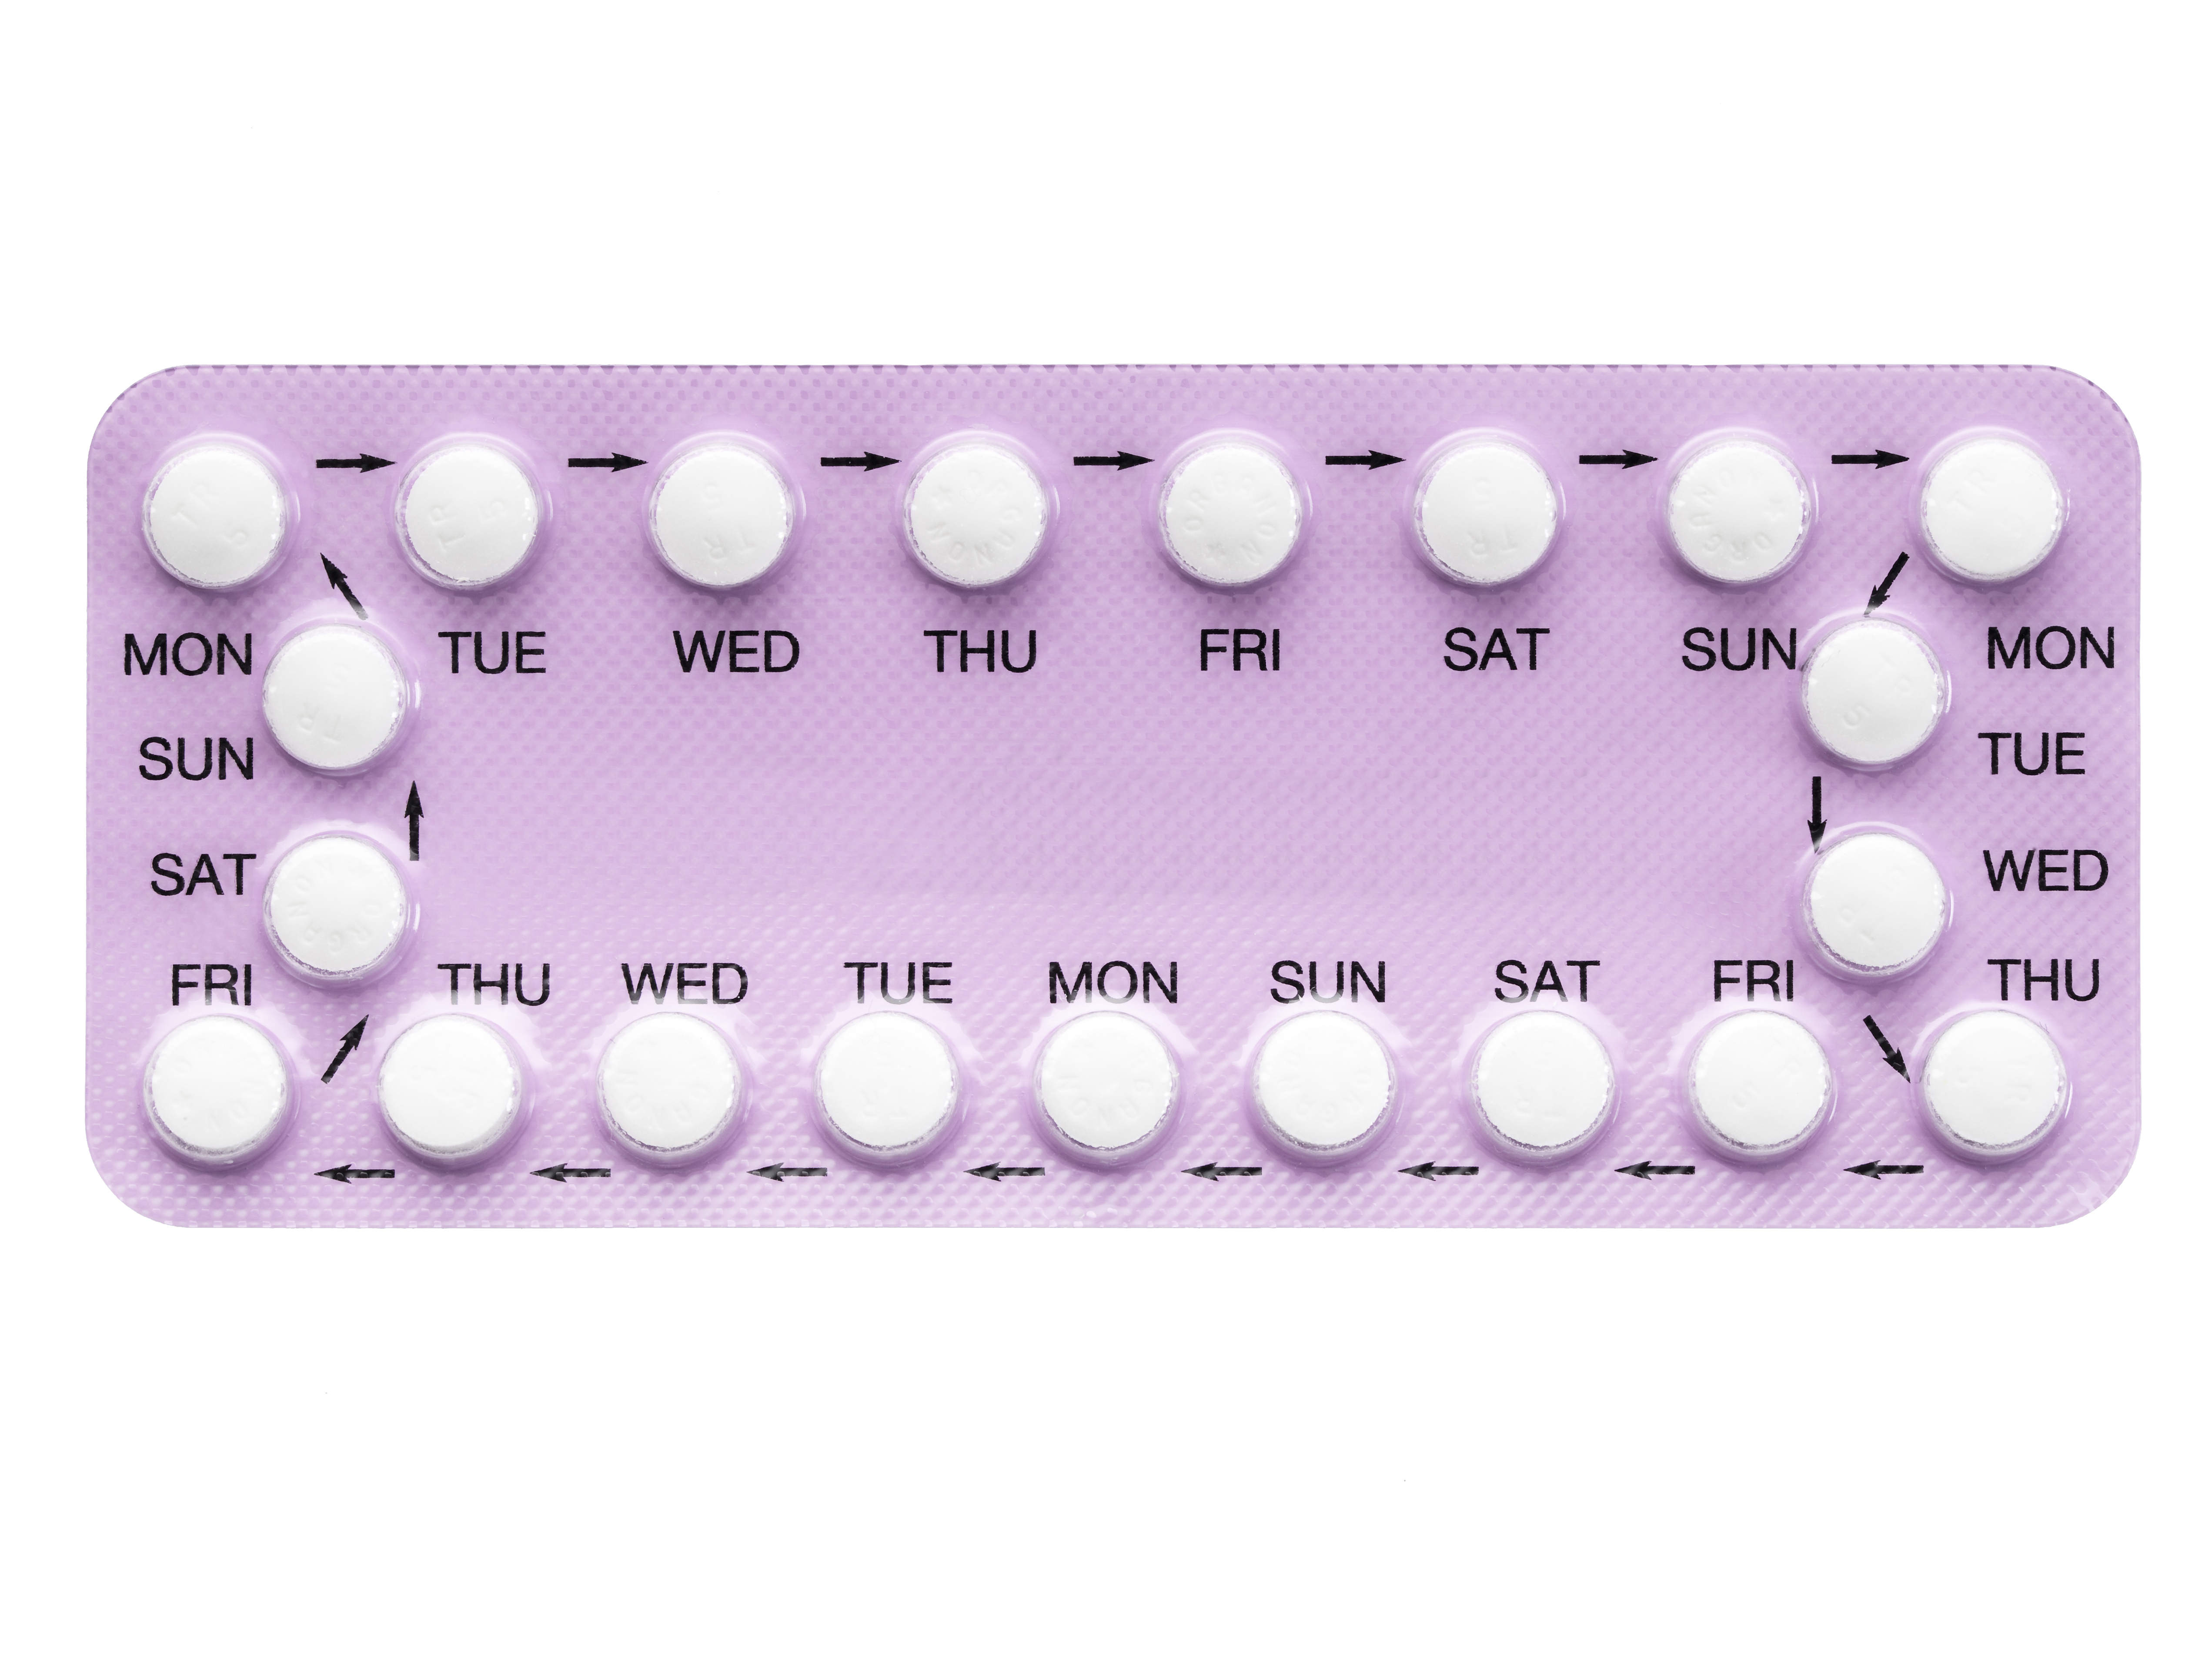 4-pill-heavy-periods-your-flow-birth-control-pill